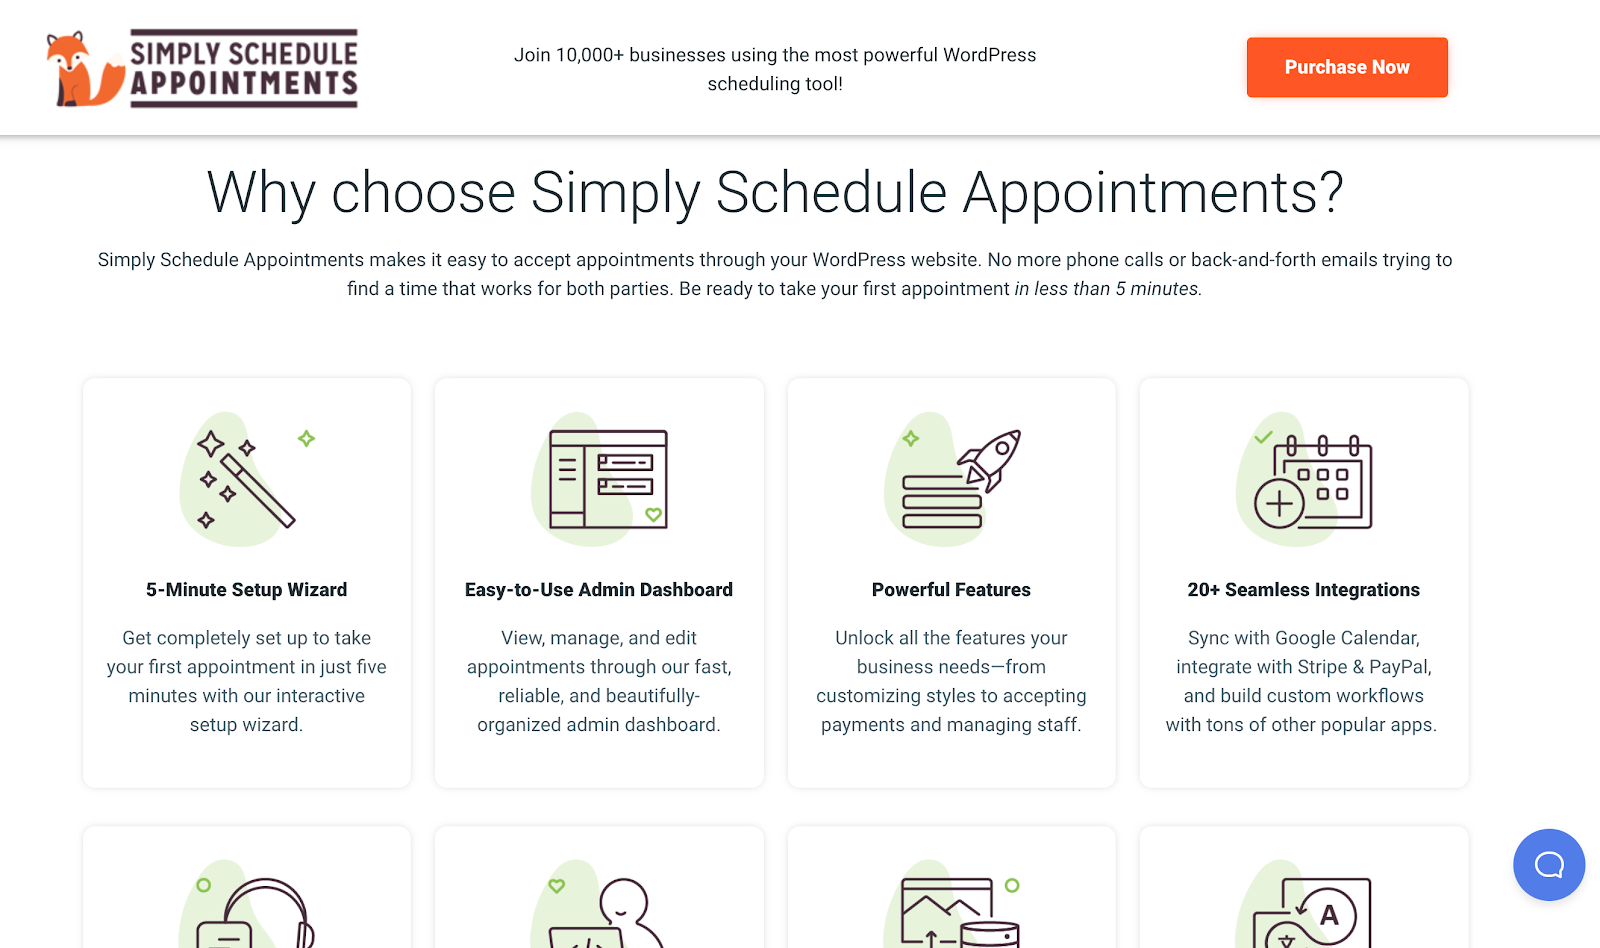 Simply Schedule Appointments Features